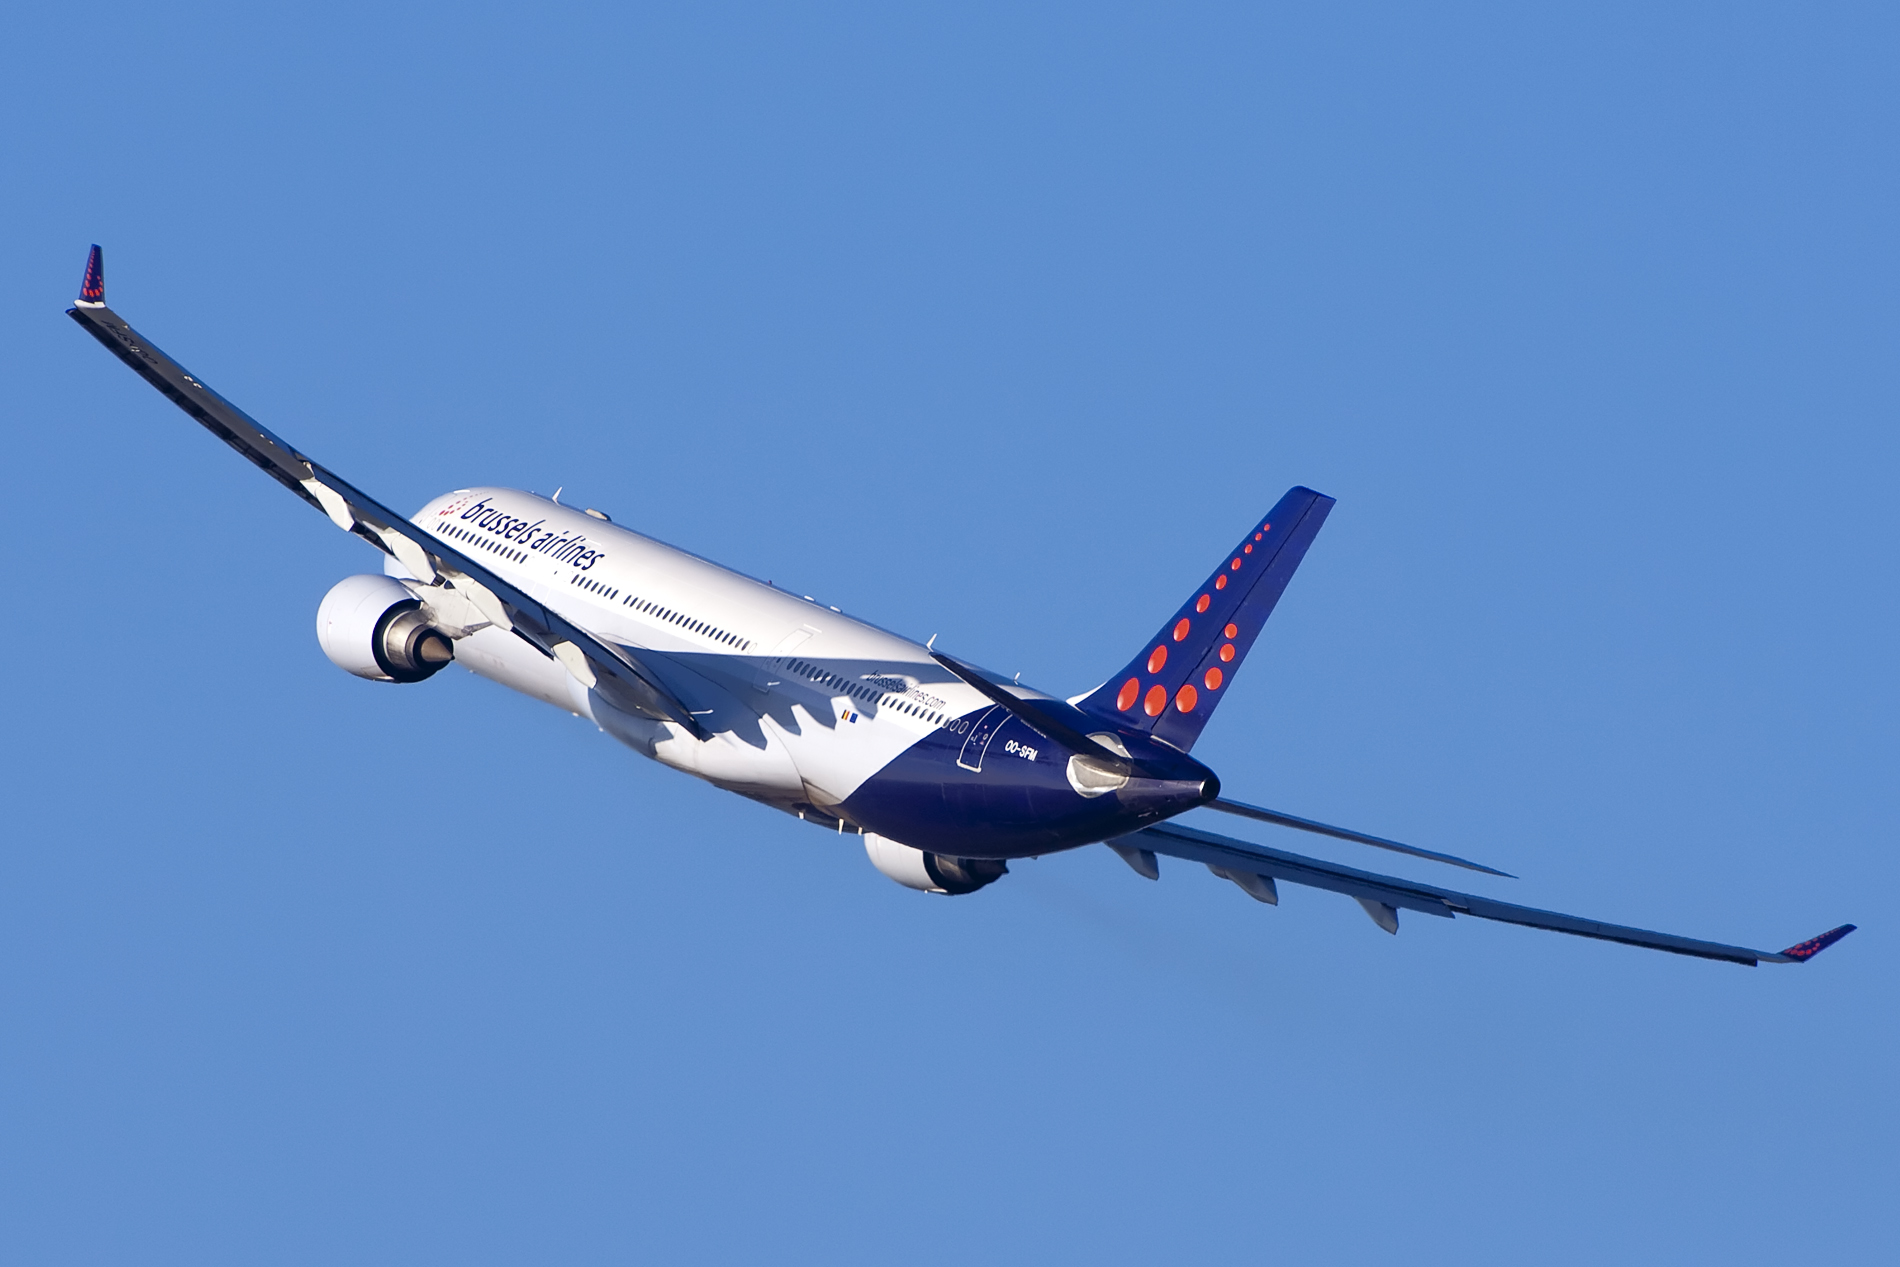 OO-SFM A330 Brussels Airlines par Maarten Visser sous (CC BY-SA 2.0) https://www.flickr.com/photos/44939325@N02/6795361781/ https://creativecommons.org/licenses/by-sa/2.0/